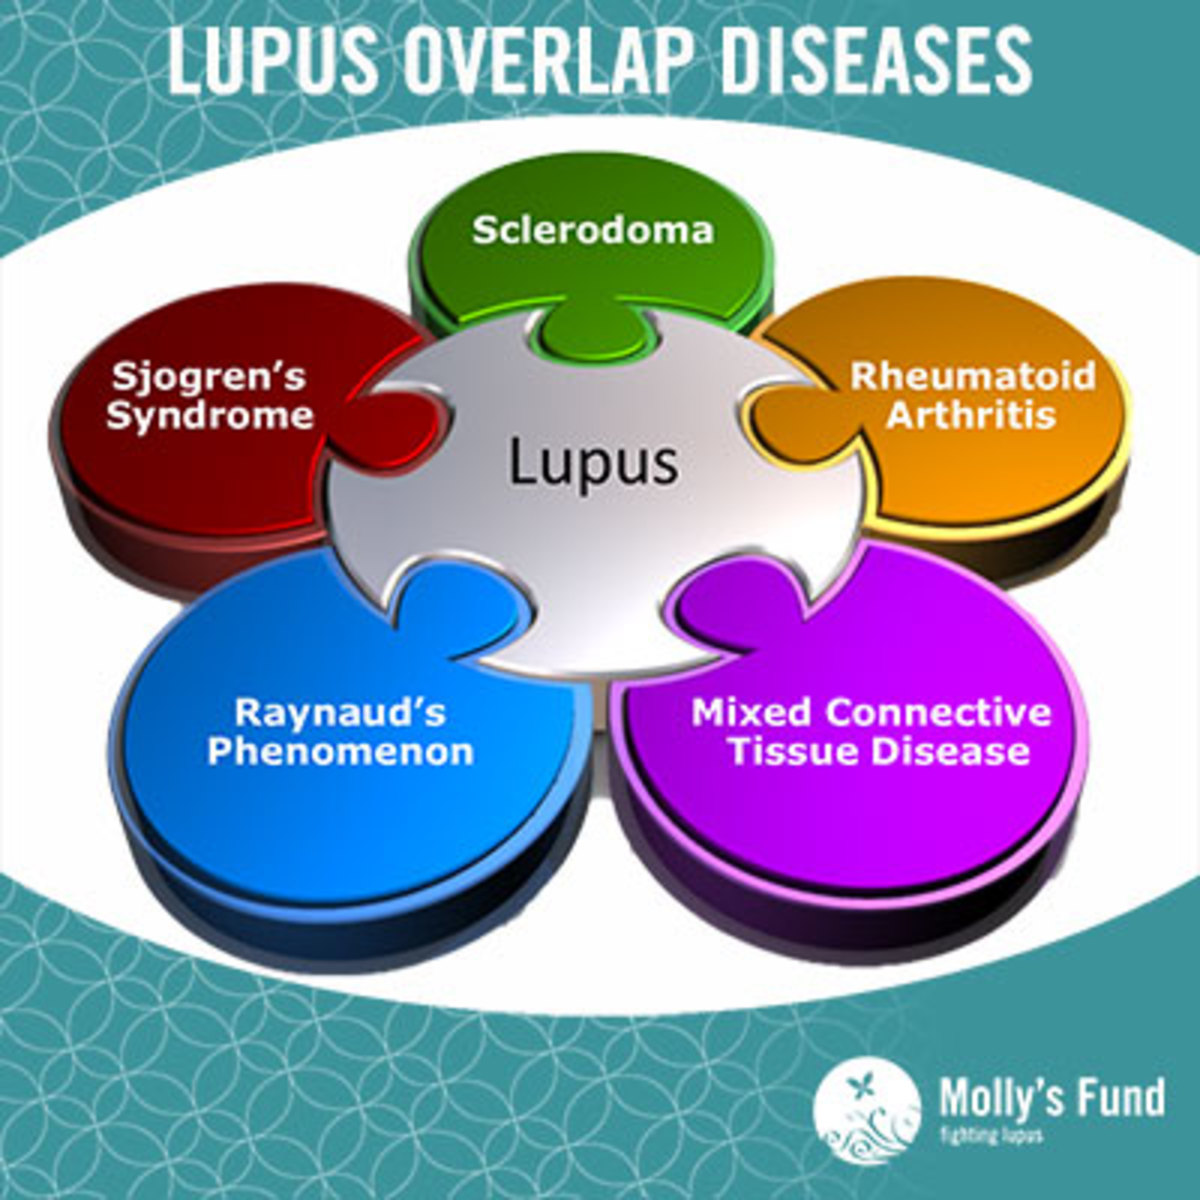 The overlap diseases associated with lupus